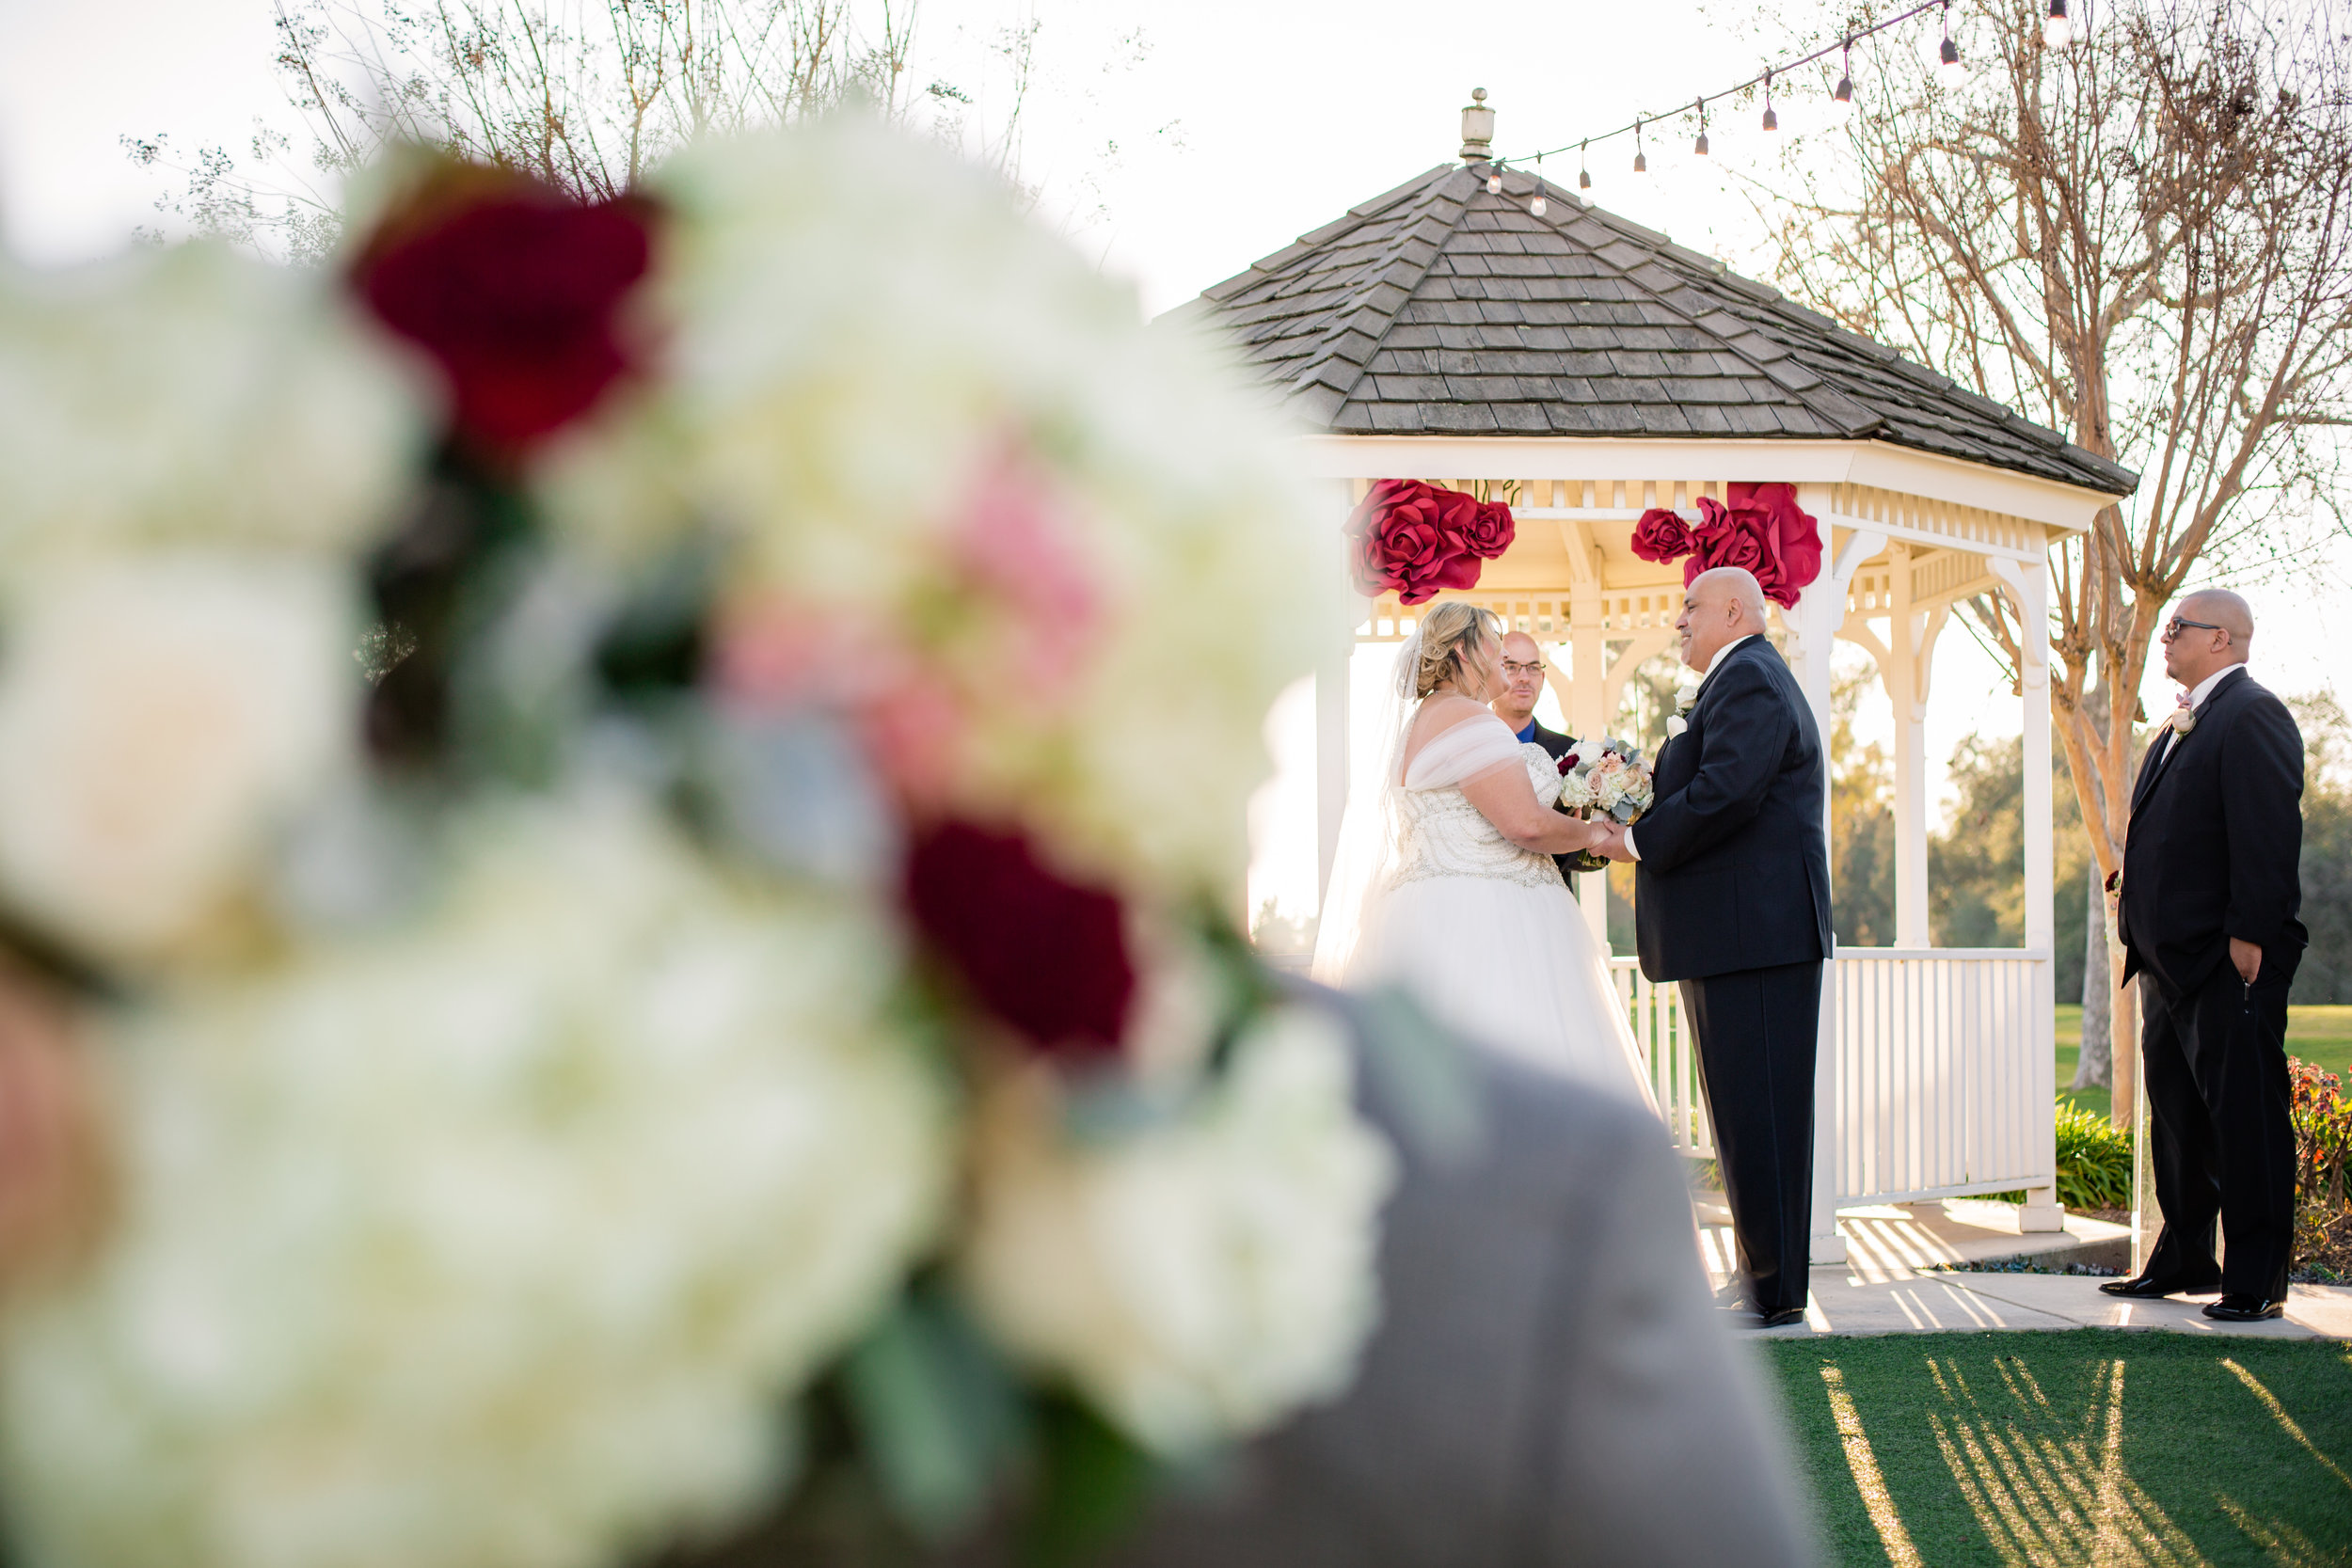 Regina & Mike - The Pavilion at Haggin Oaks - Sacramento Wedding Photographer - Ashley Teasley Photography-5170.jpg